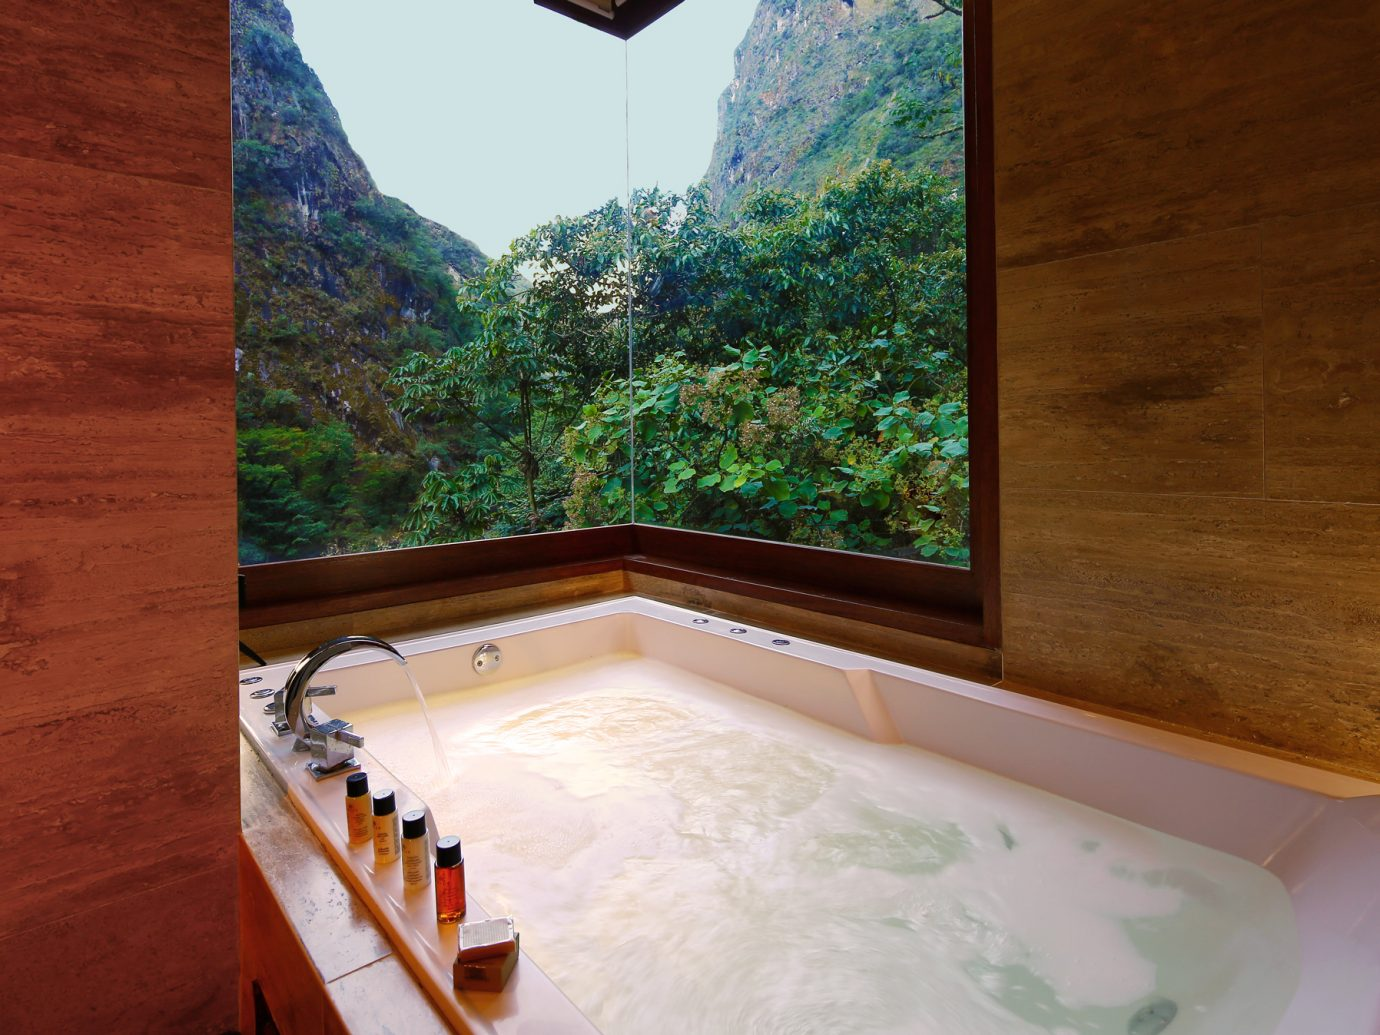 Luxurious bathtub in the imperial suite at SUMAQ overlooking lush Peruvian mountains